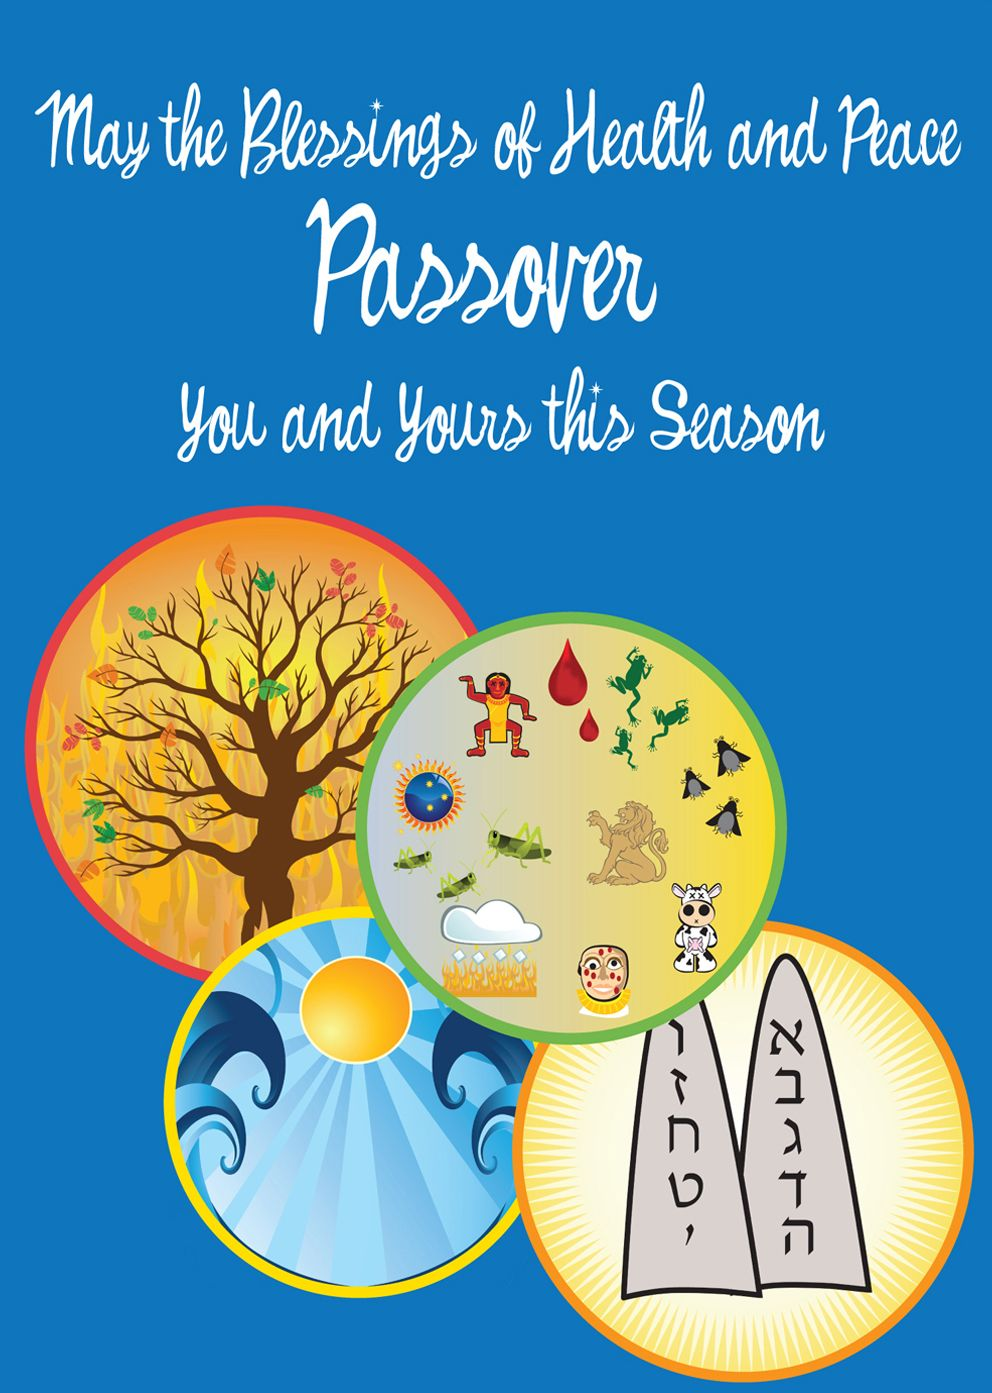 Happy passover online greeting cards passover day hd images with happy passover online greeting cards passover day hd images with best greeting cards passover day m4hsunfo Image collections